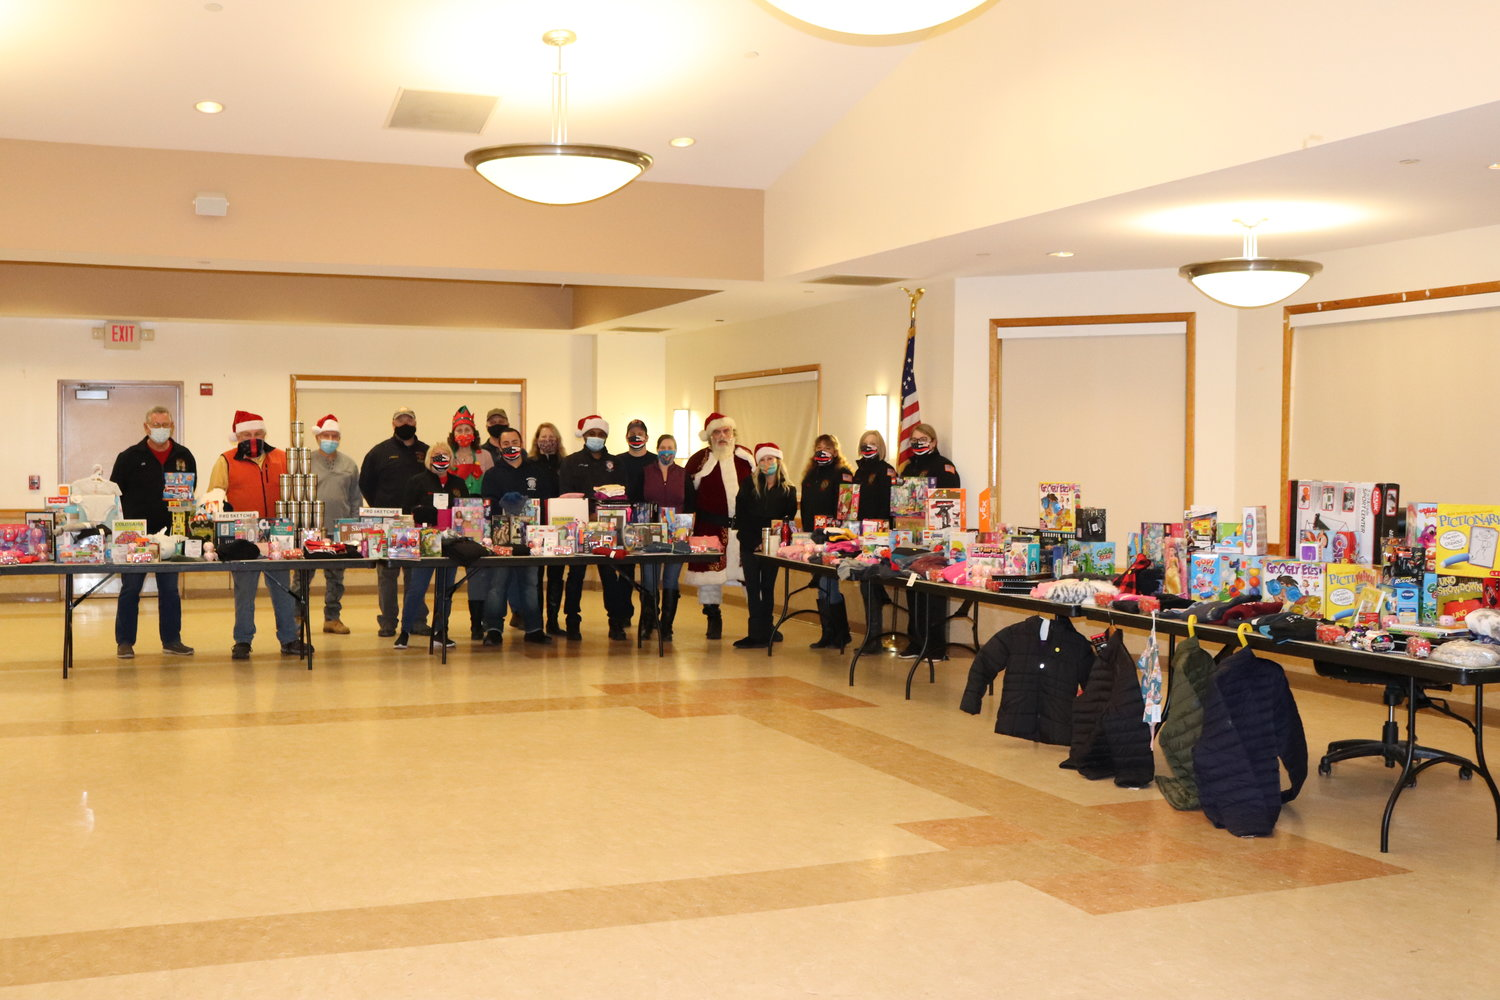 The toy drive provided approximately 250 gifts to 29 families with a total of 53 children.